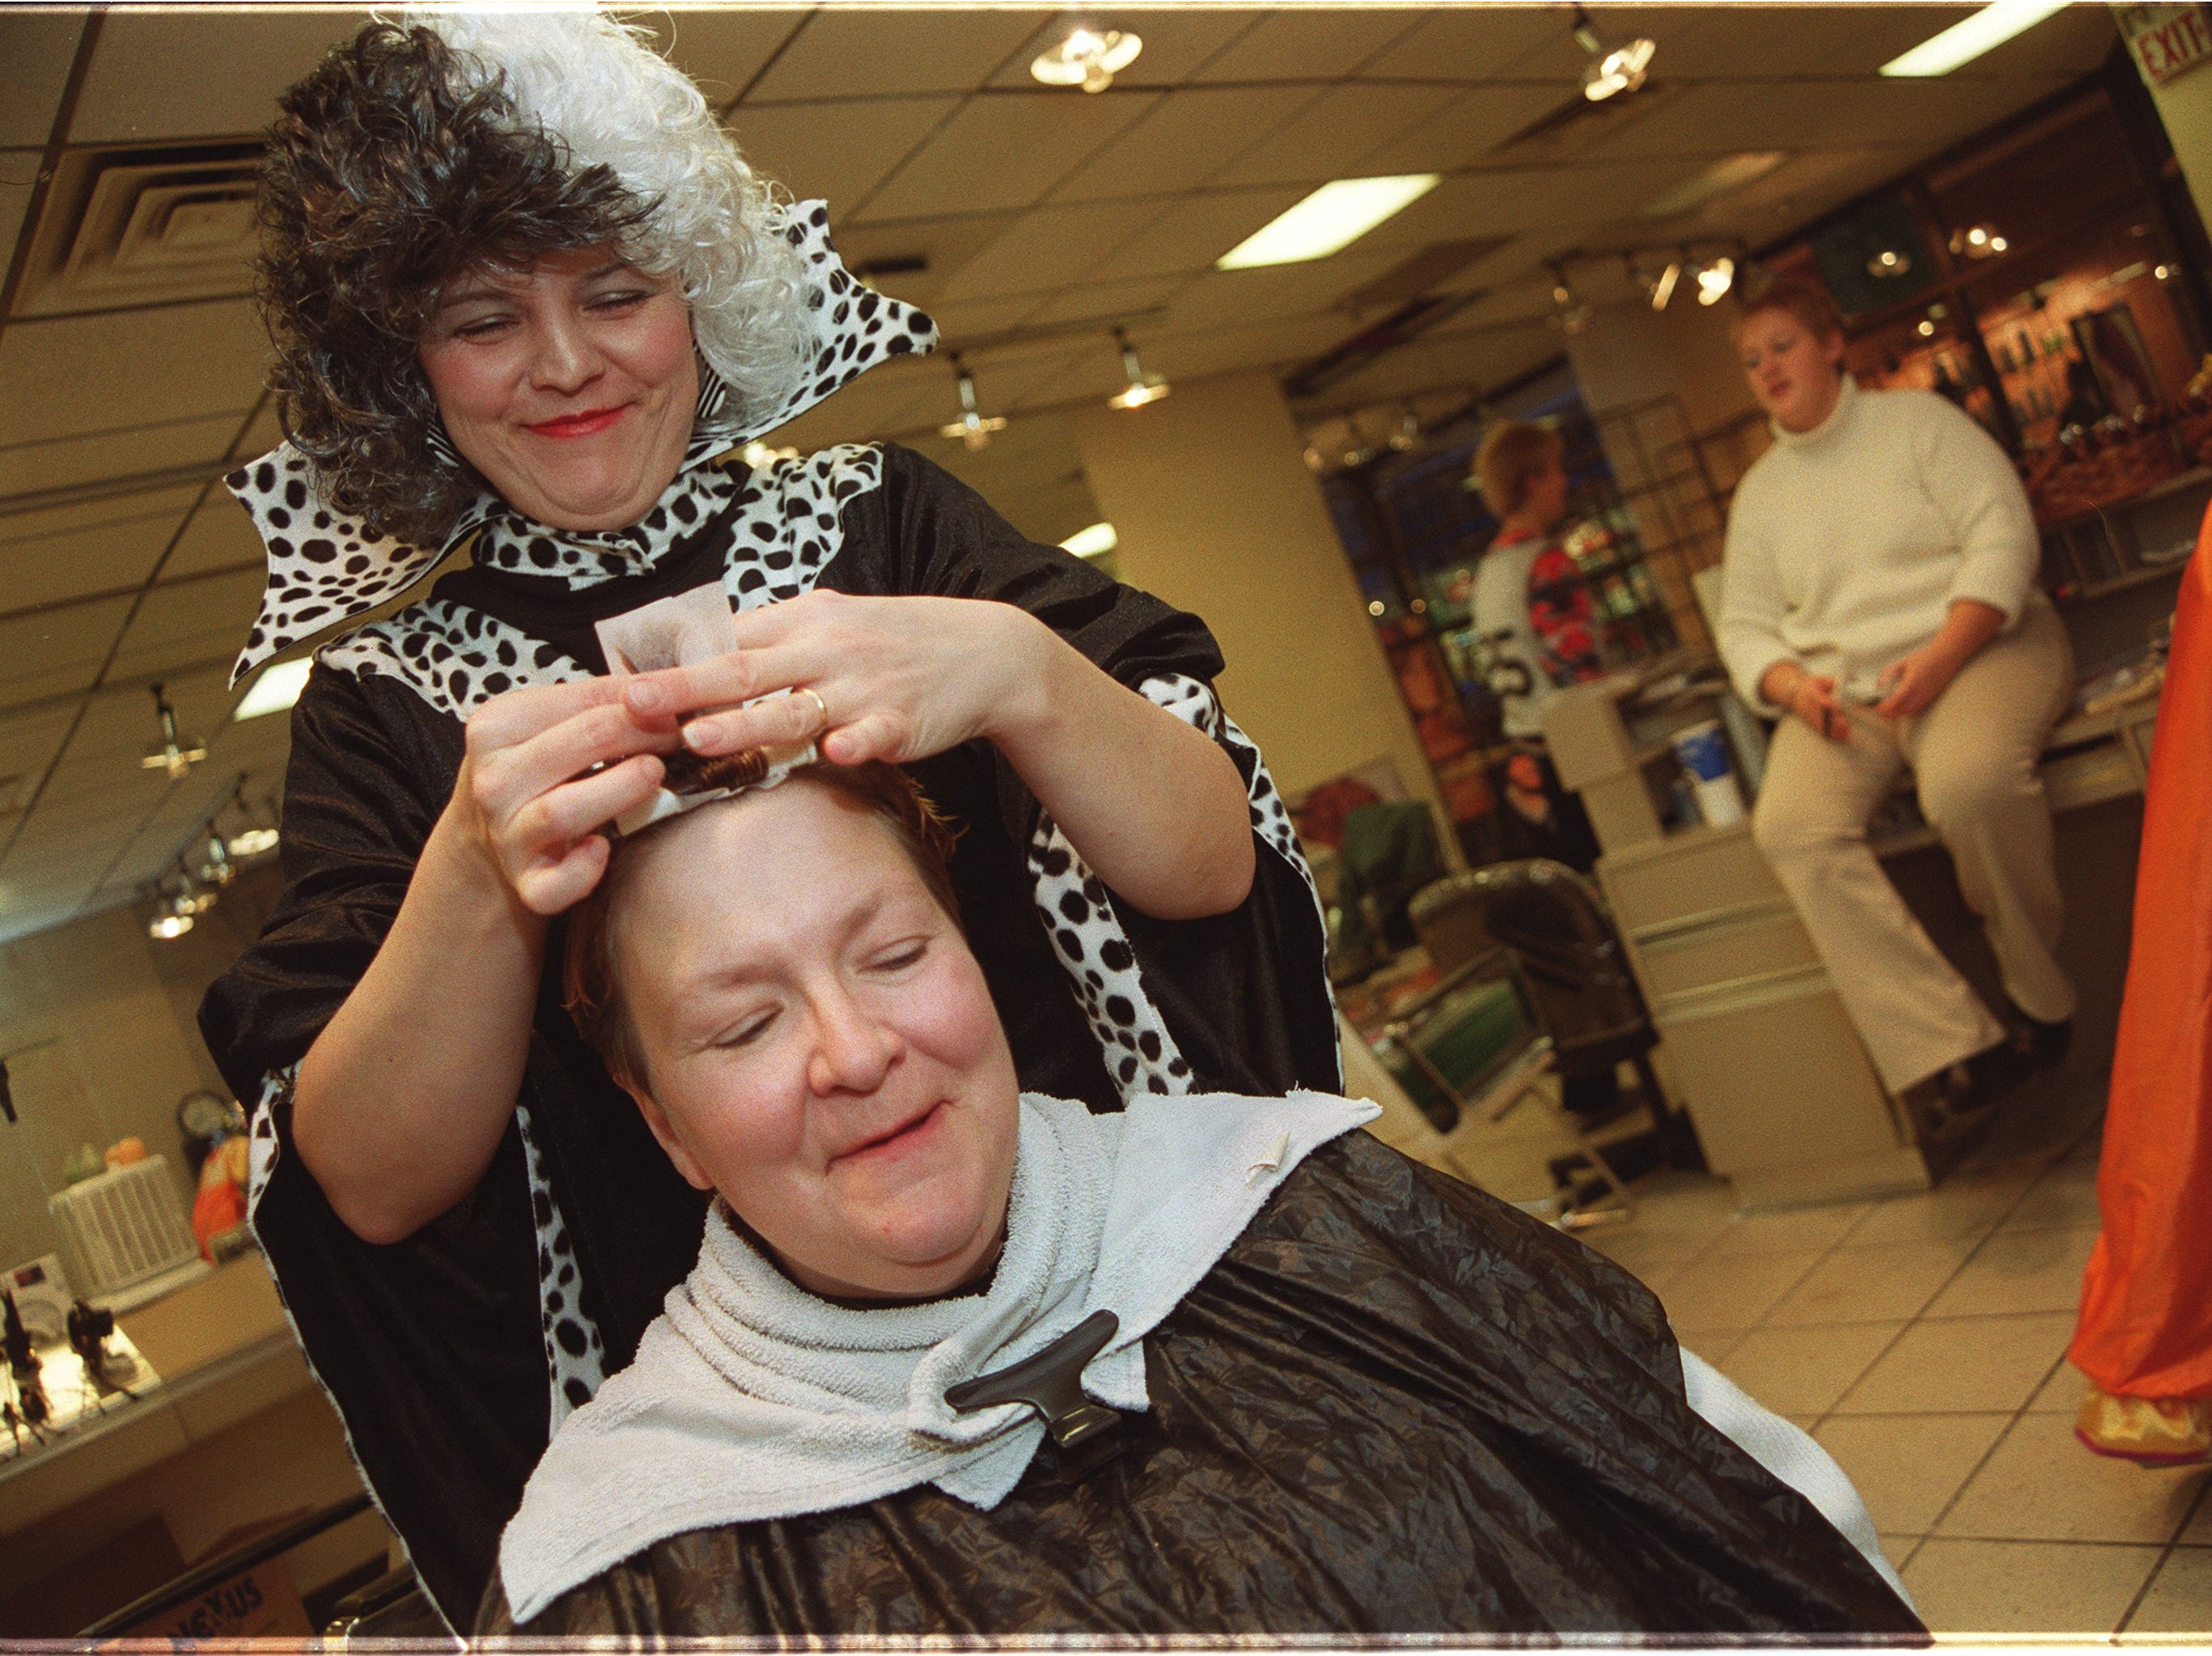 1999: `I love Halloween. It's my favorite holiday,' says Johanna Aasen, standing above, dressed at Cruella DeVill from Walt Disney's `101 Dalmatians.' Aasen gives Karen King, seated, a perm at the Regis Salon, a hair salon in the Pyramid Mall in Lansing. Aasen said she would wear her costume while taking her two children trick-or-treating.